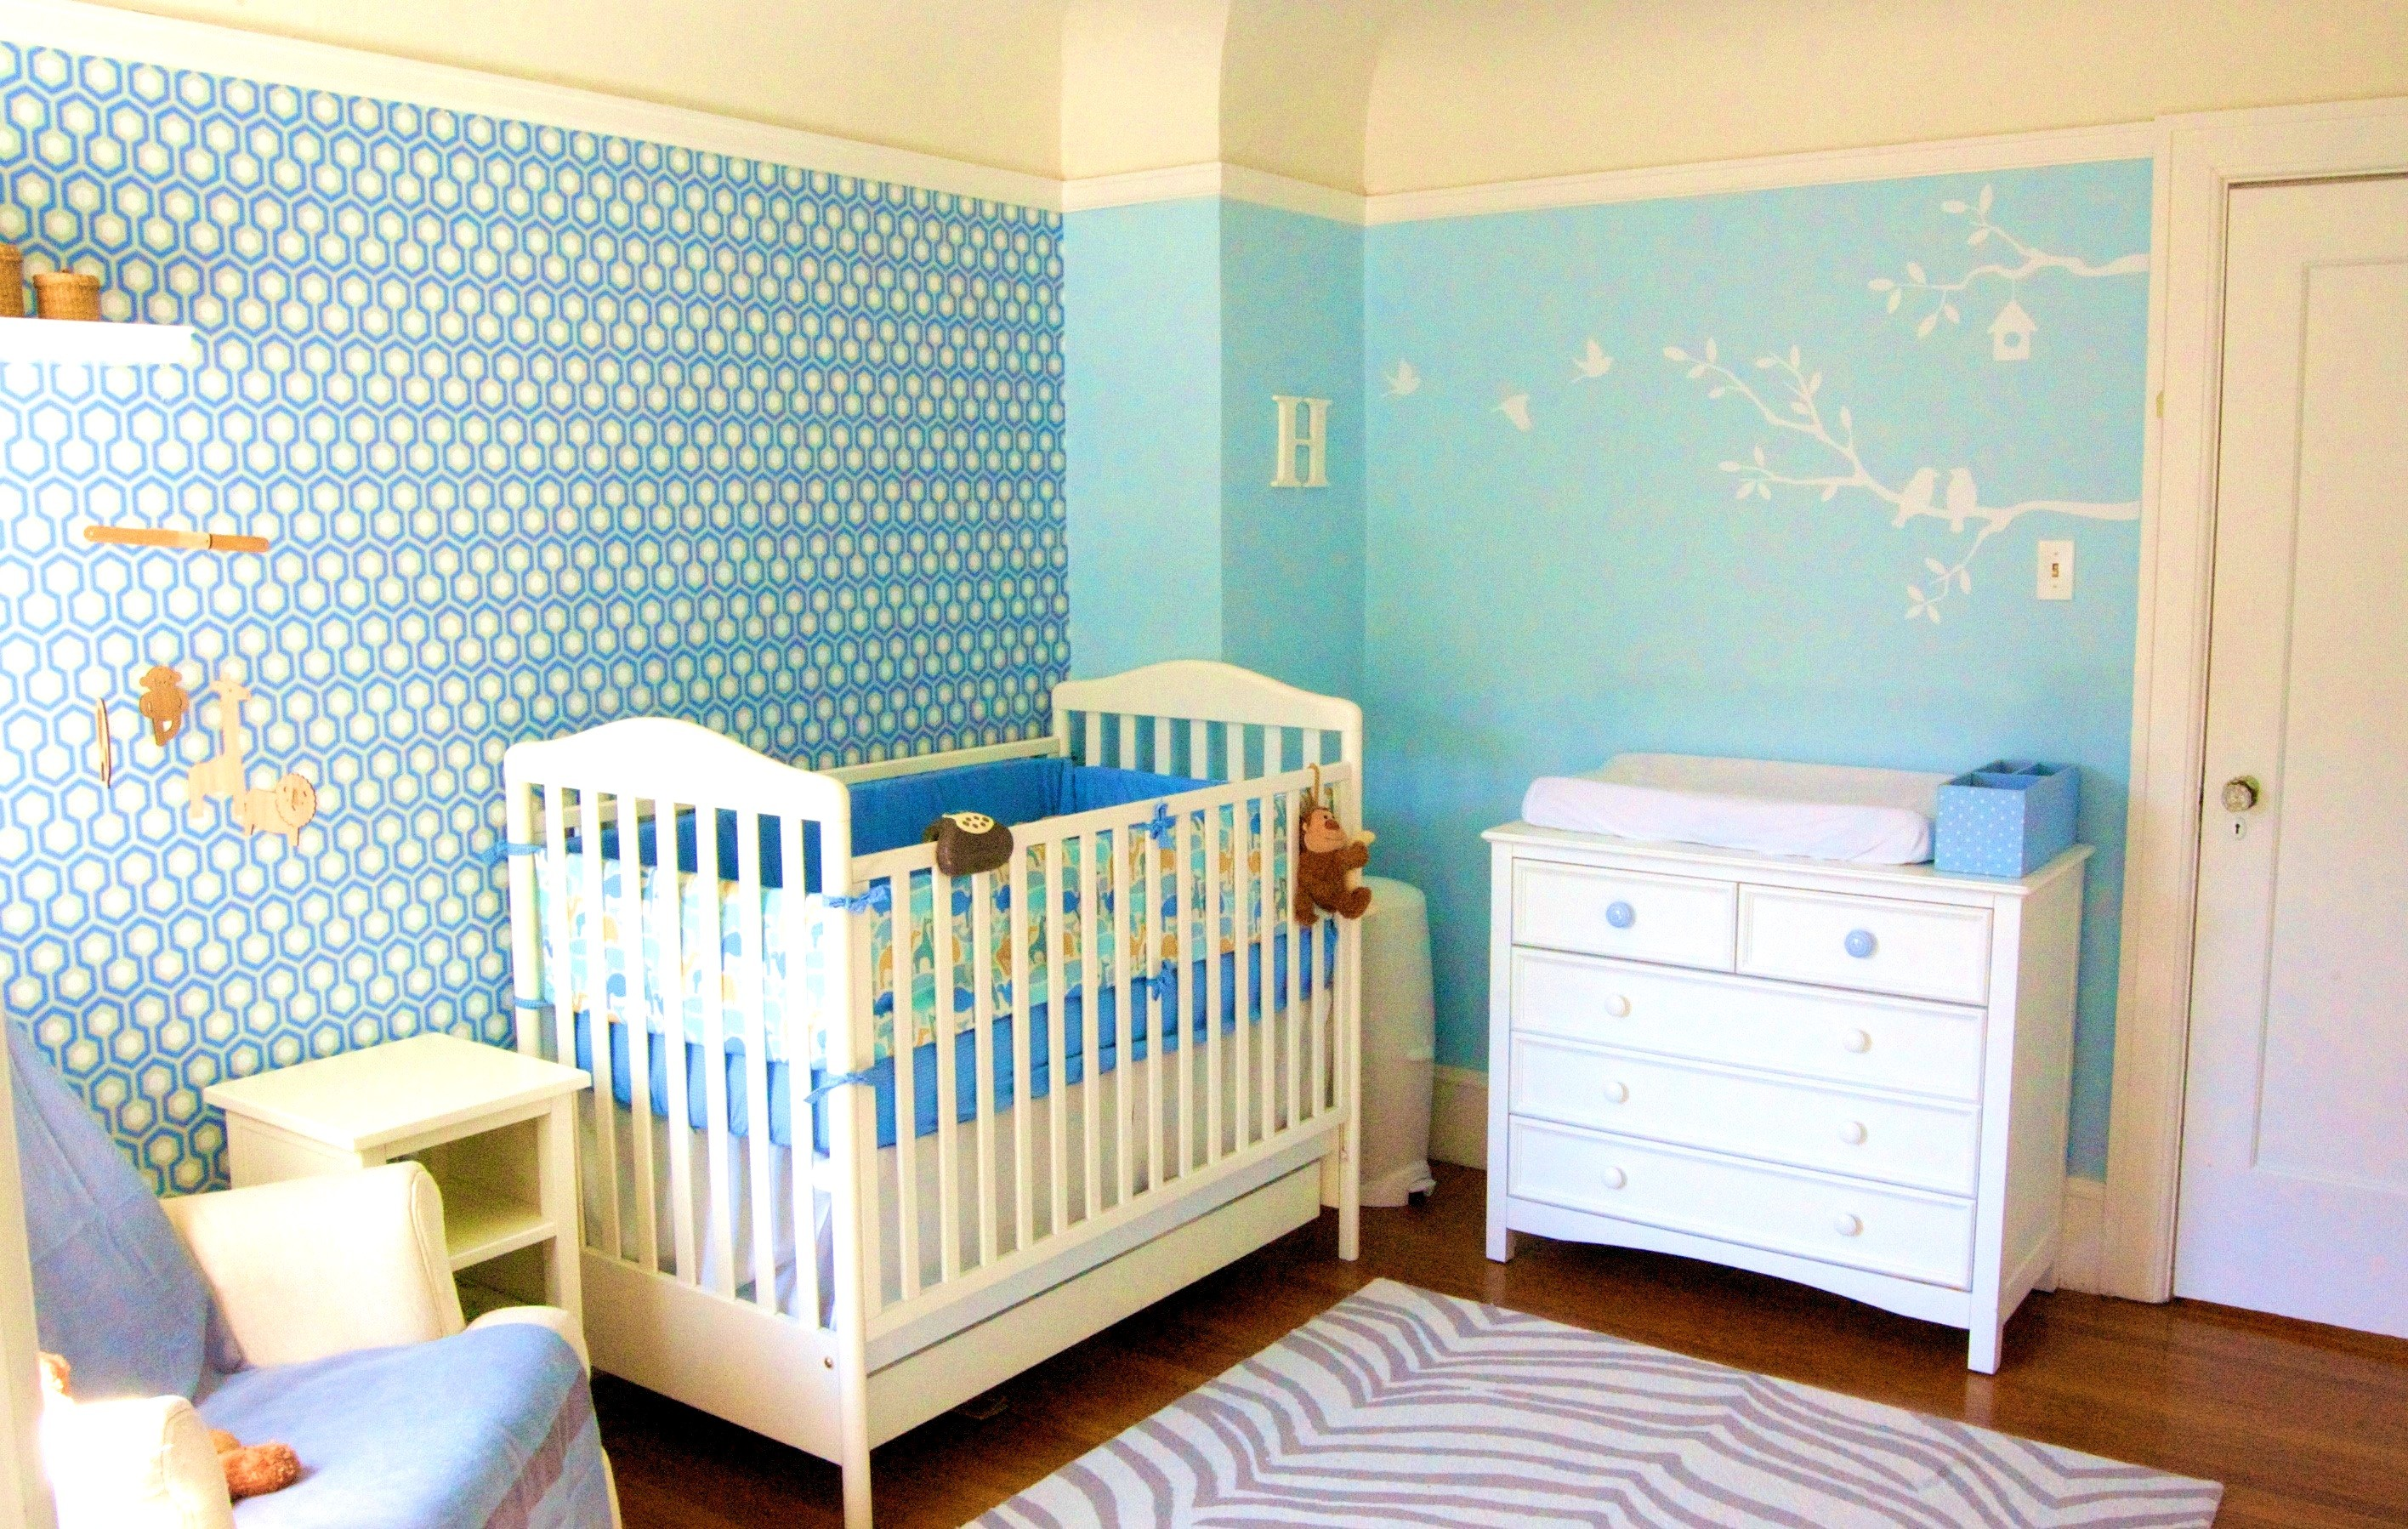 Res: 2832x1798, Download Baby Room Wallpaper Uk Gallery